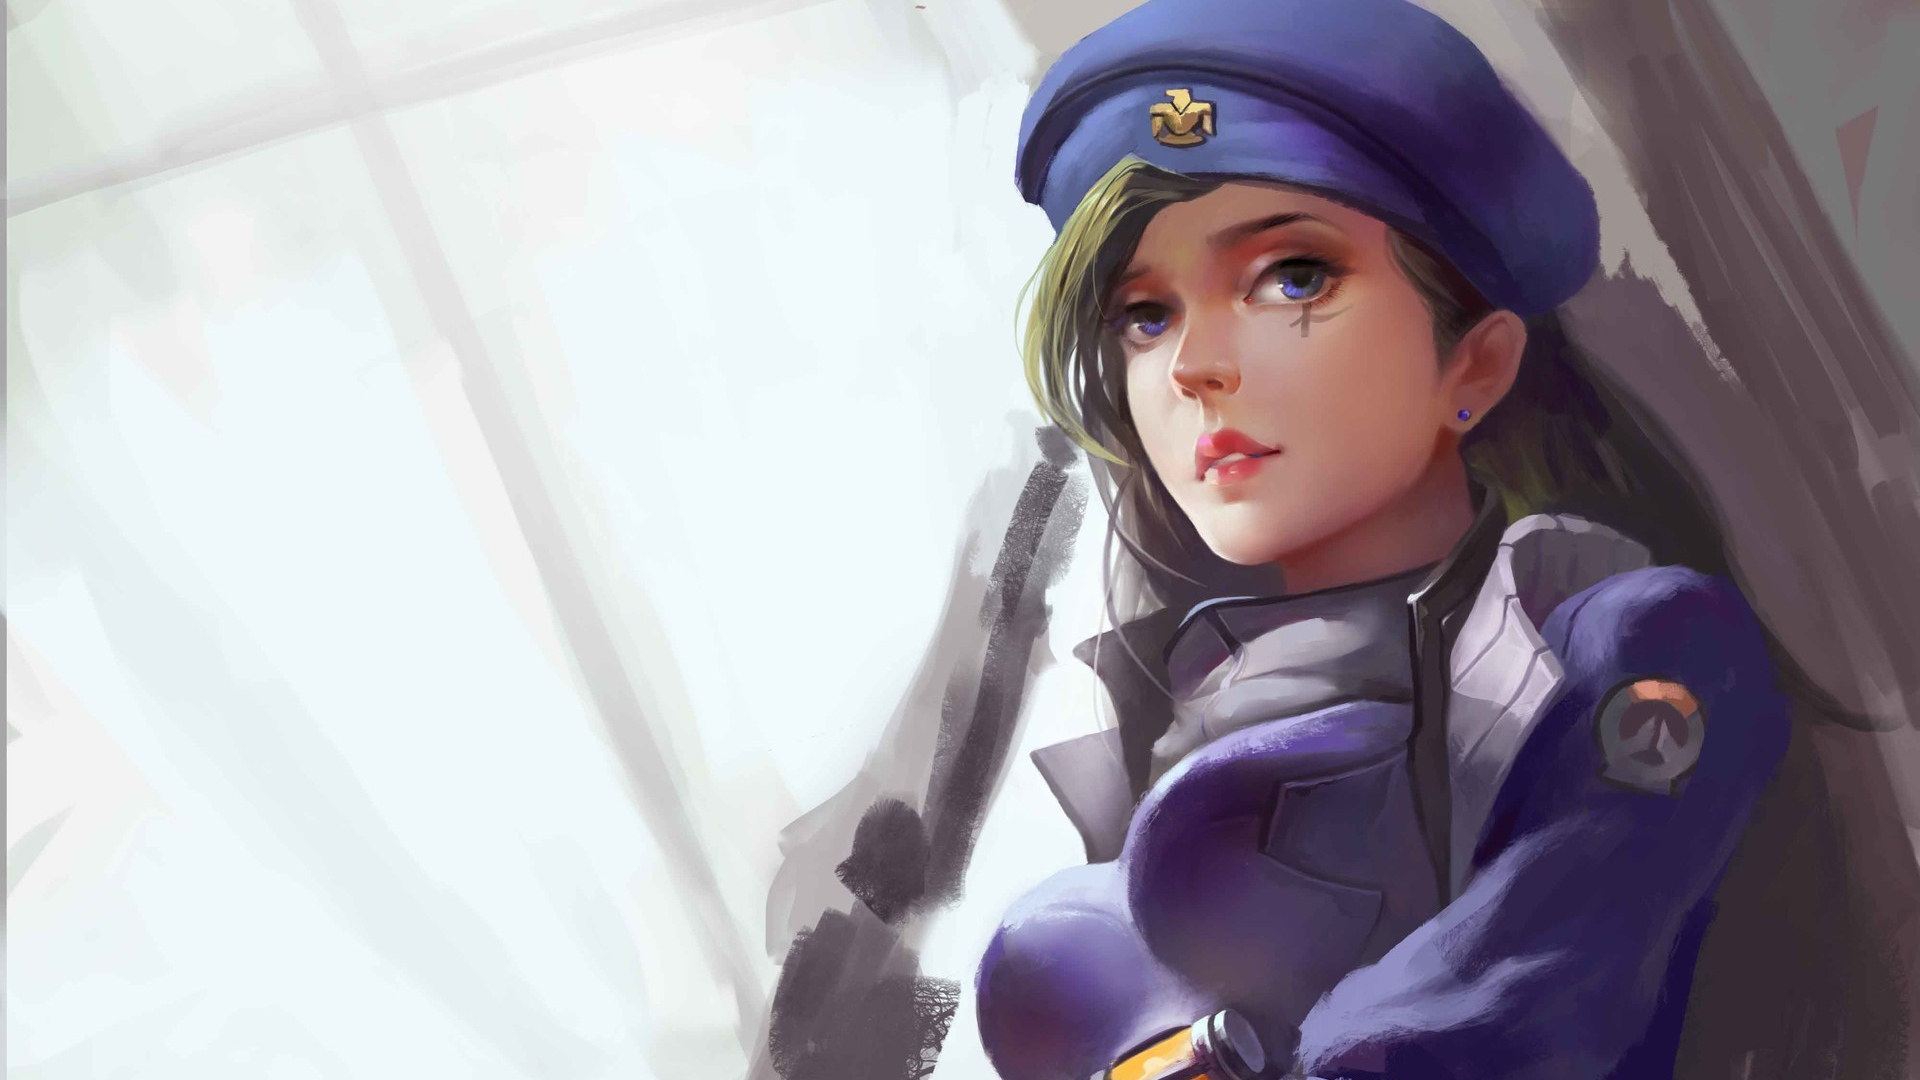 Cool Girls Overwatch Wallpapers Wallpaper 1920x1080 Px Ana Overwatch Video Games